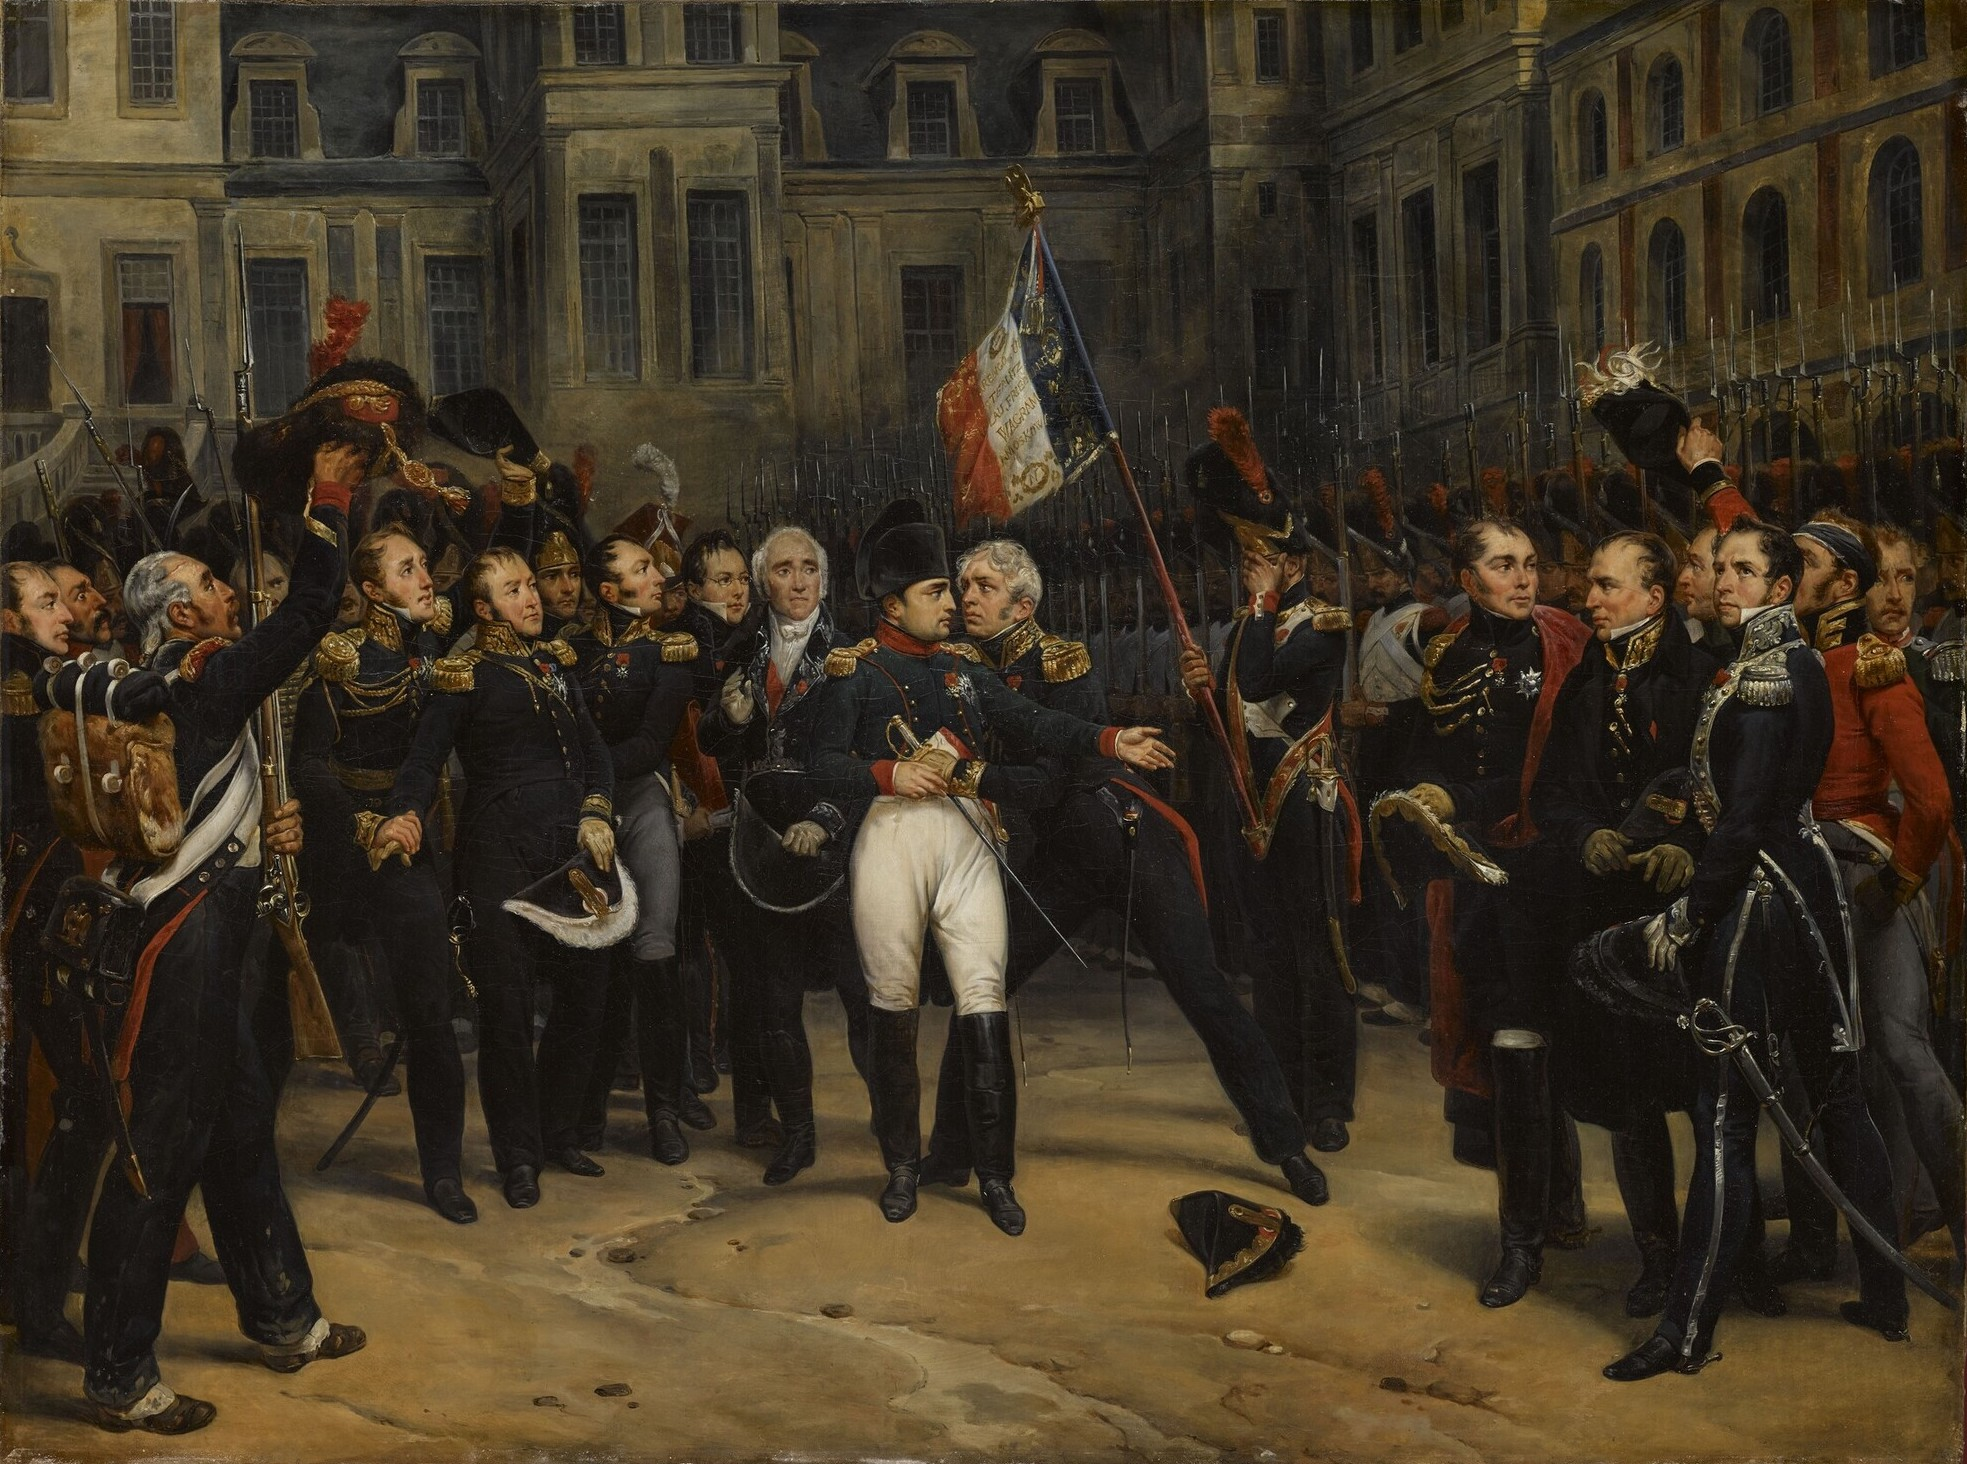 Napoleon's farewell to the Imperial Guard in the Cheval-Blanc (White Horse) courtyard of the Palace of Fontainebleau.